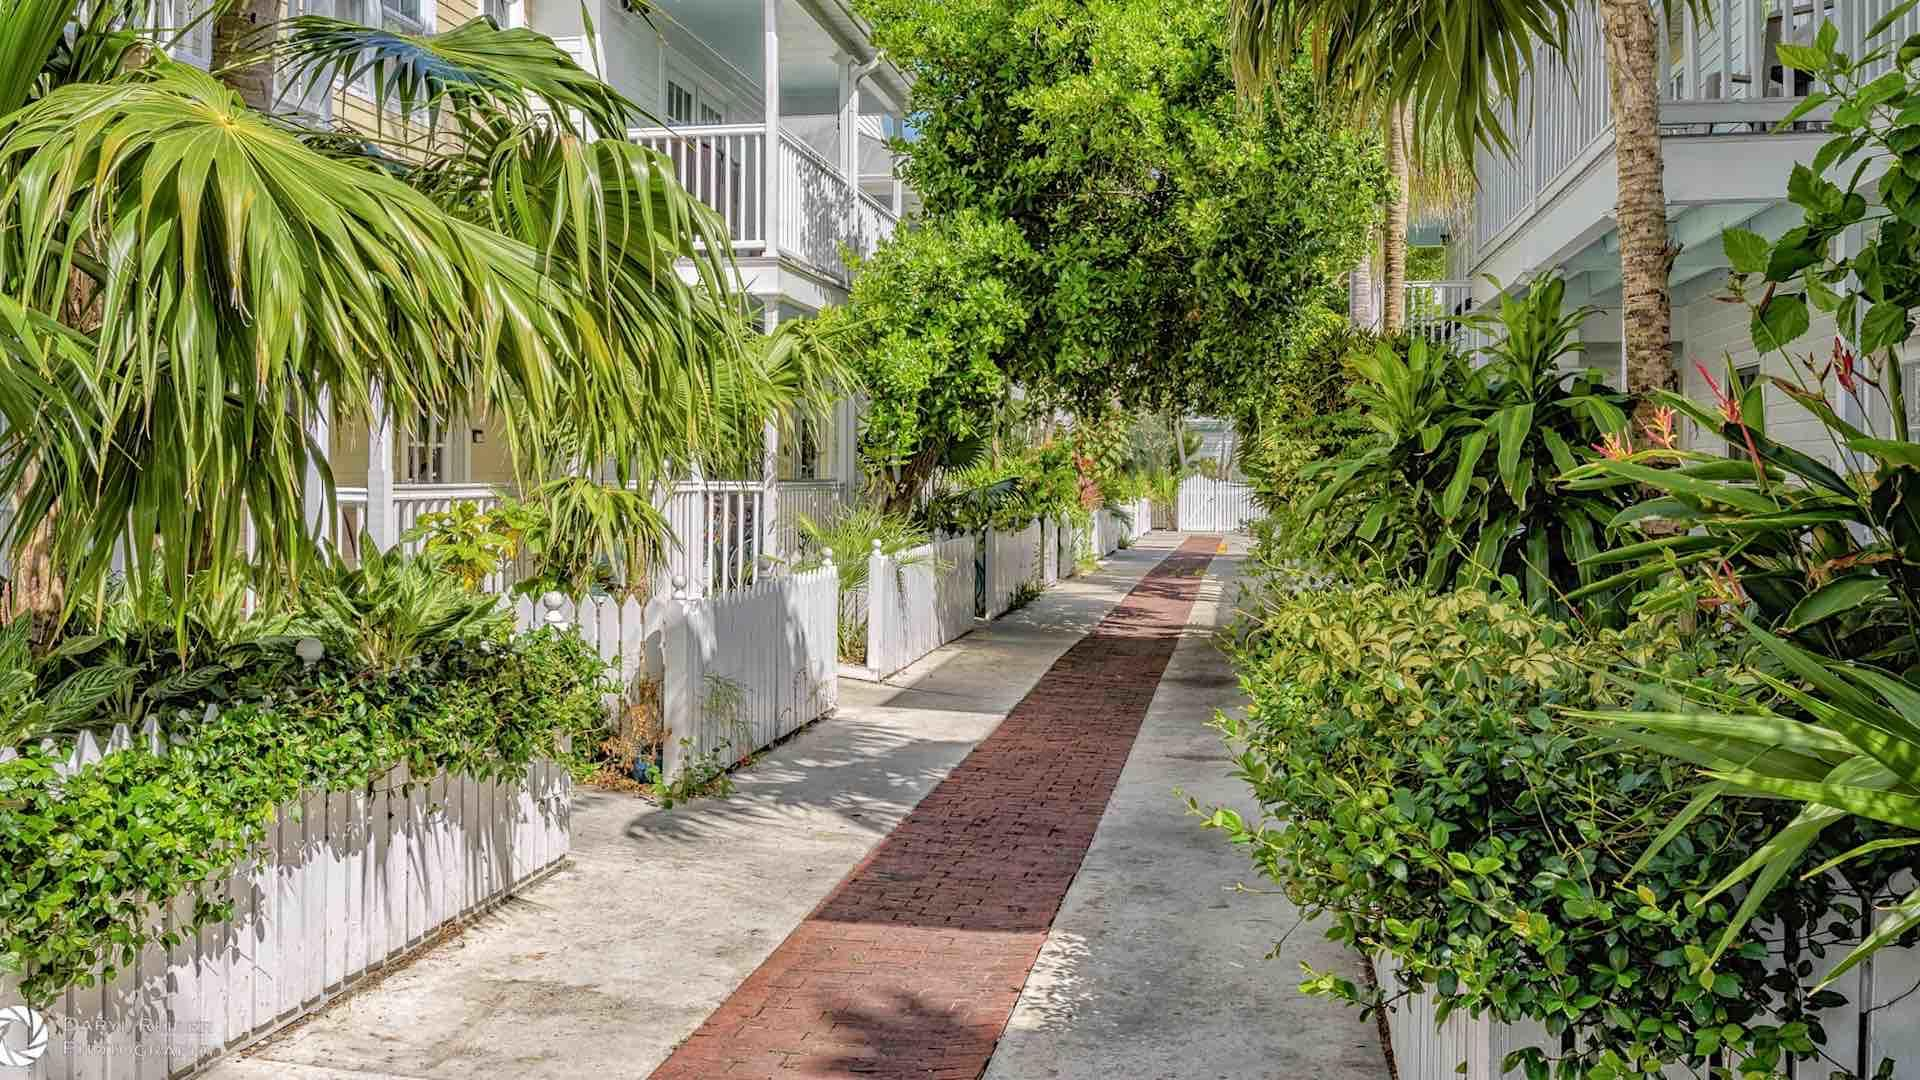 The promenade is lushly landscaped and stays cool even on warm days...